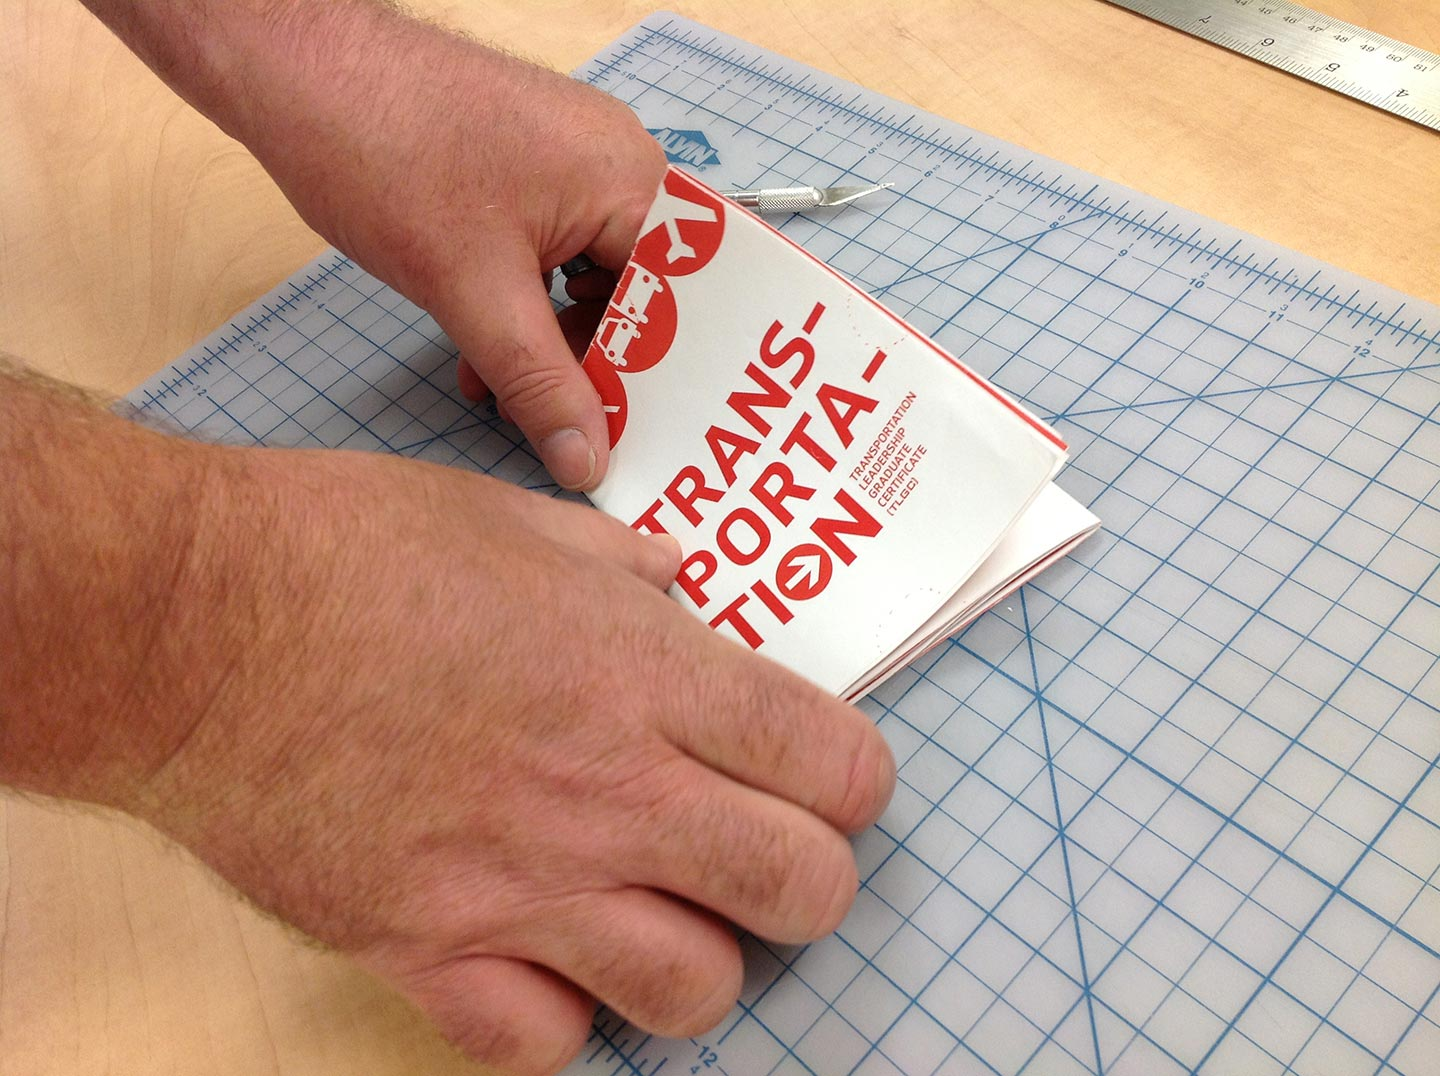 Two hands folding a transportation brochure atop a light blue gridded cutting mat